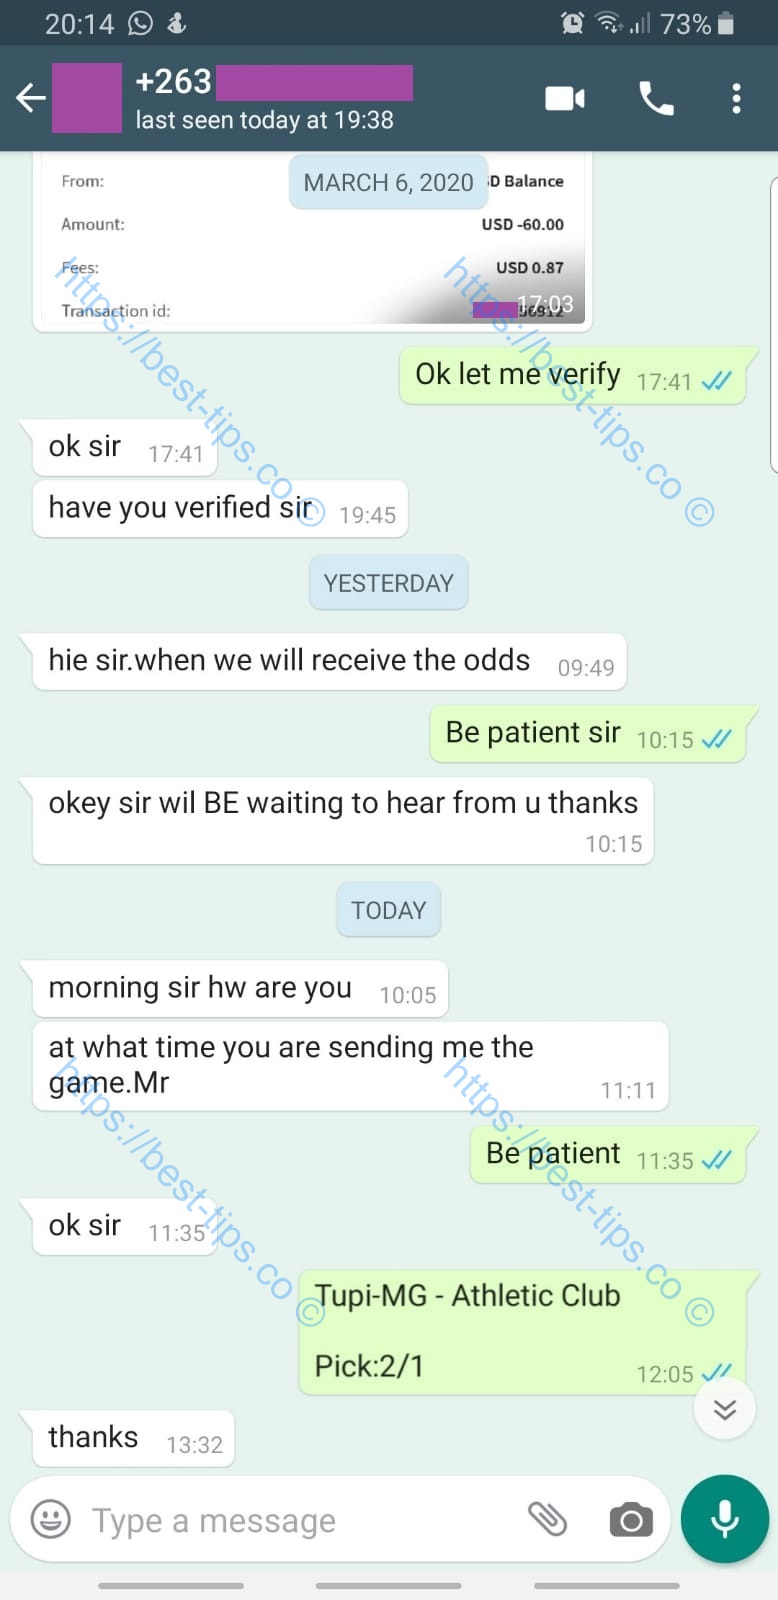 08/MARCH/2020 FIXED MATCH WHATSAPP PROOF